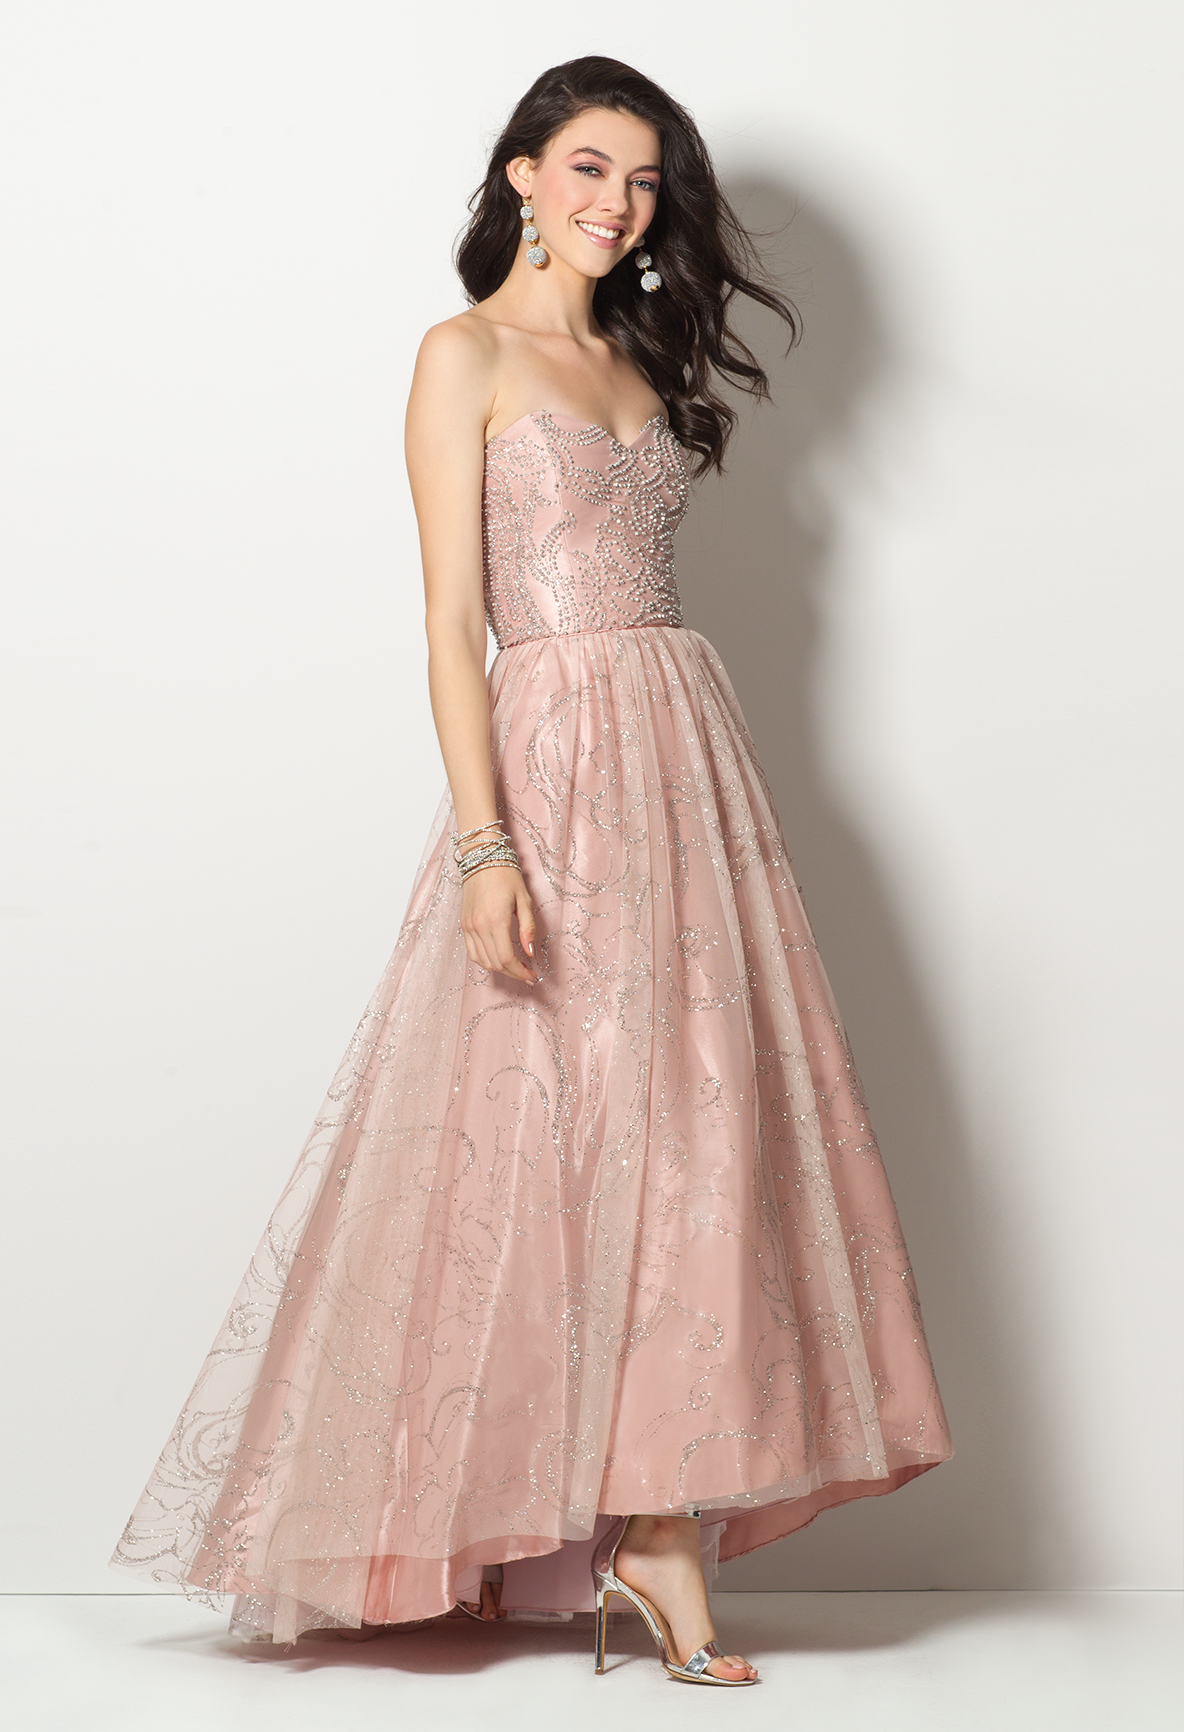 Put Your Most Gorgeous Self Forward With This Stunning Prom Dress With Its Sweetheart Neckline Fitted Beaded Bodice With Ruching Glit Elbise Elbise Modelleri [ 1732 x 1184 Pixel ]